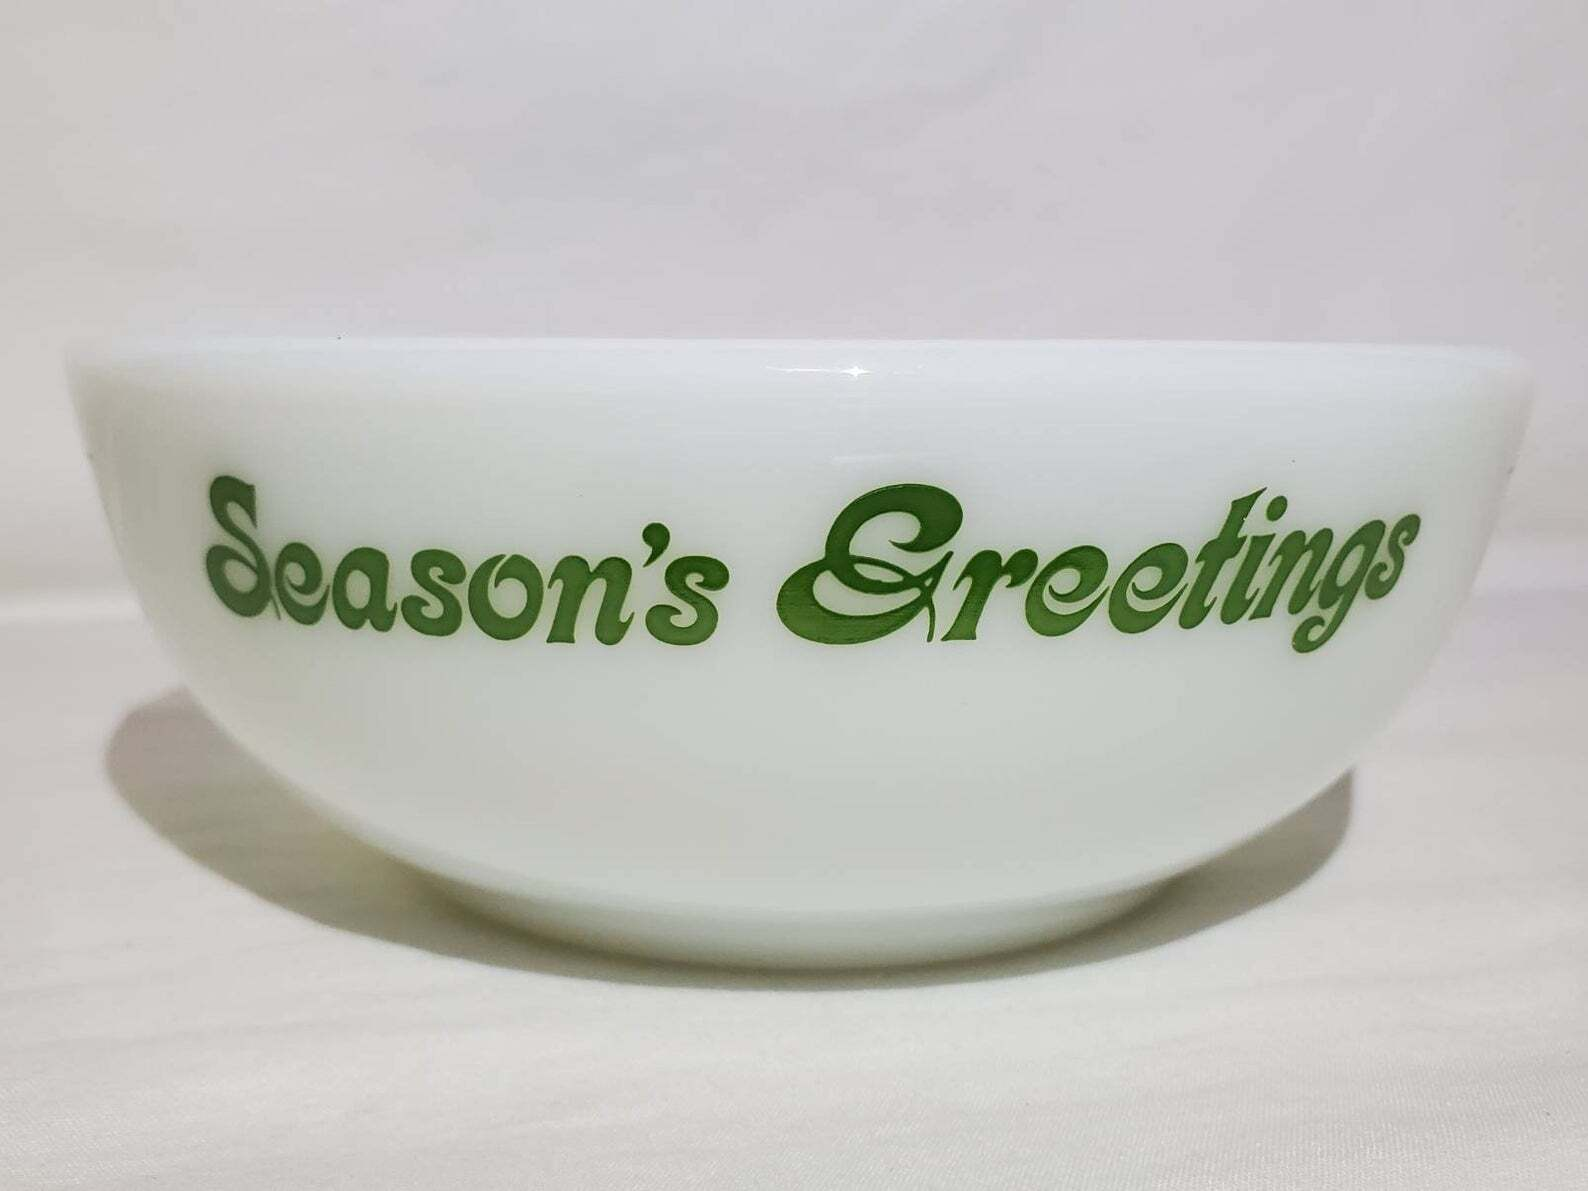 Season's Greetings Pyrex Bowl